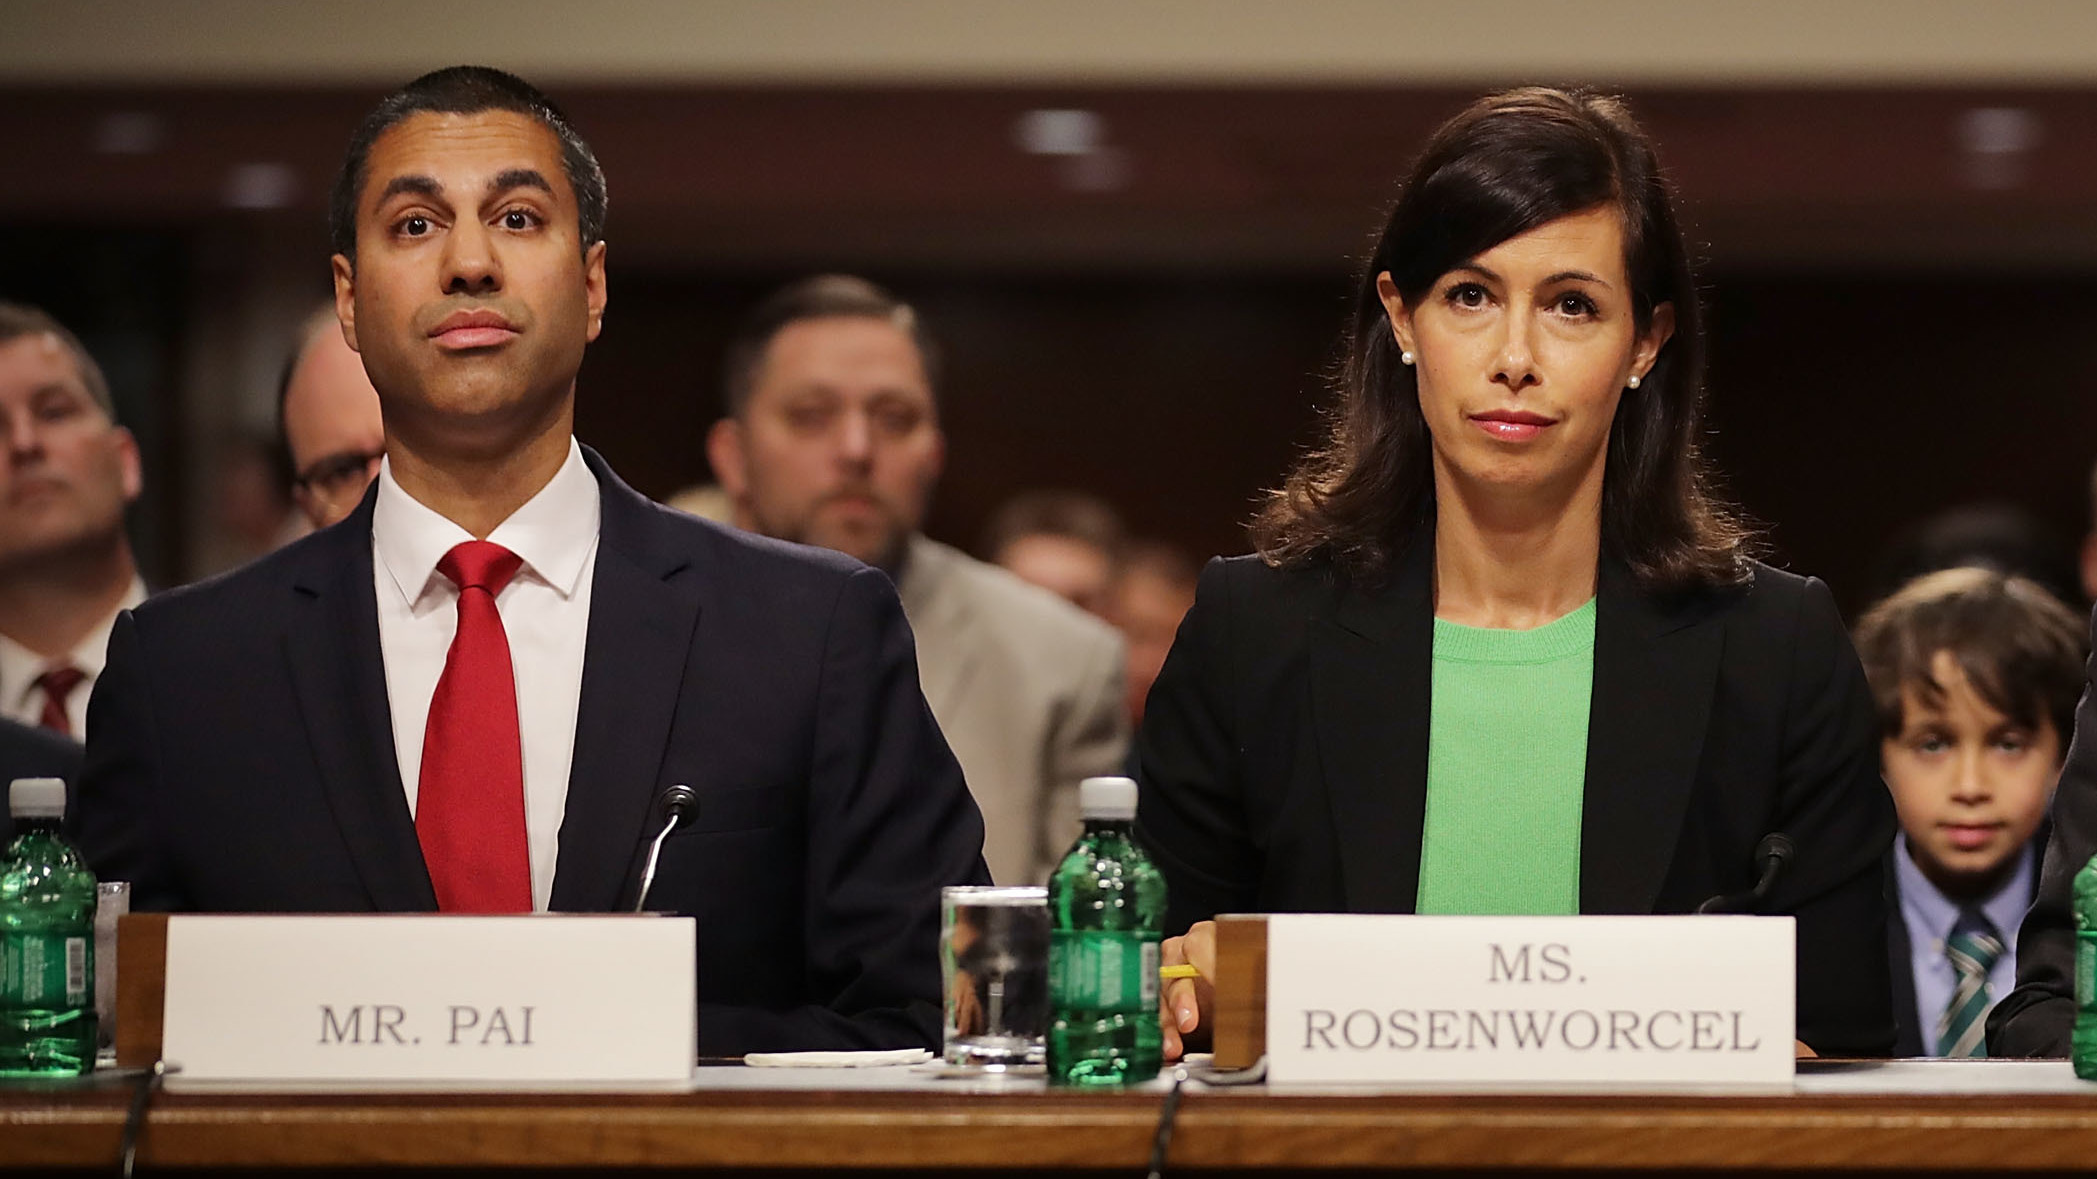 The Federal Communications Commission rollback of net neutrality went into effect today. FCC Chairman Ajit Pai championed the move, while commissioner Jessica Rosenworcel opposed it.